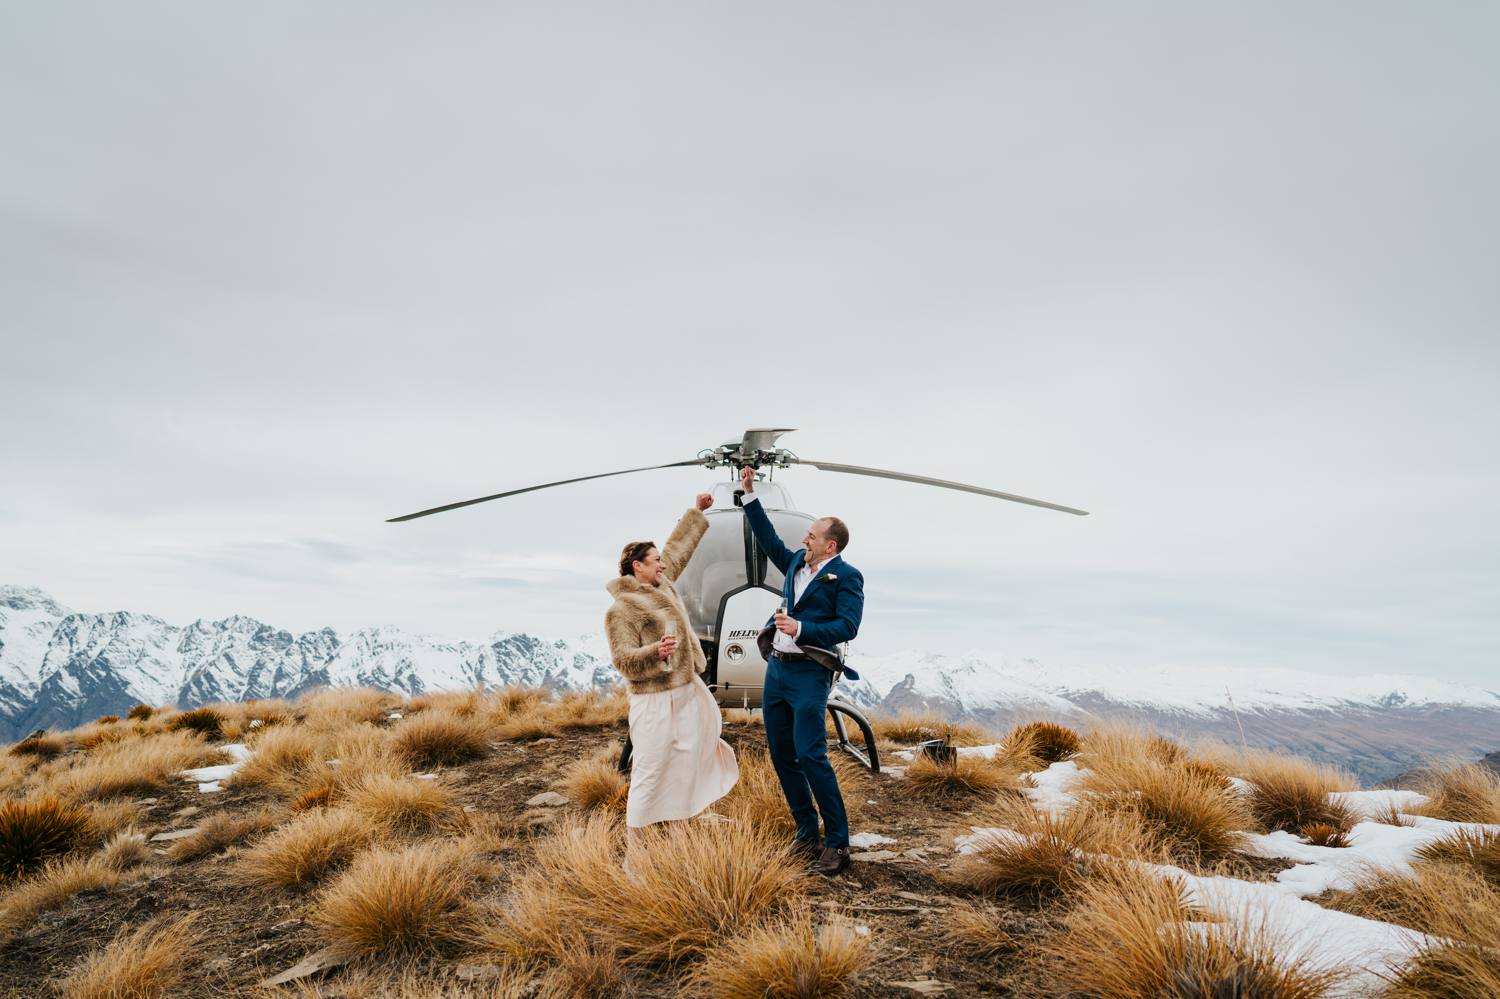 helicopter mountain wedding planner in Queenstown